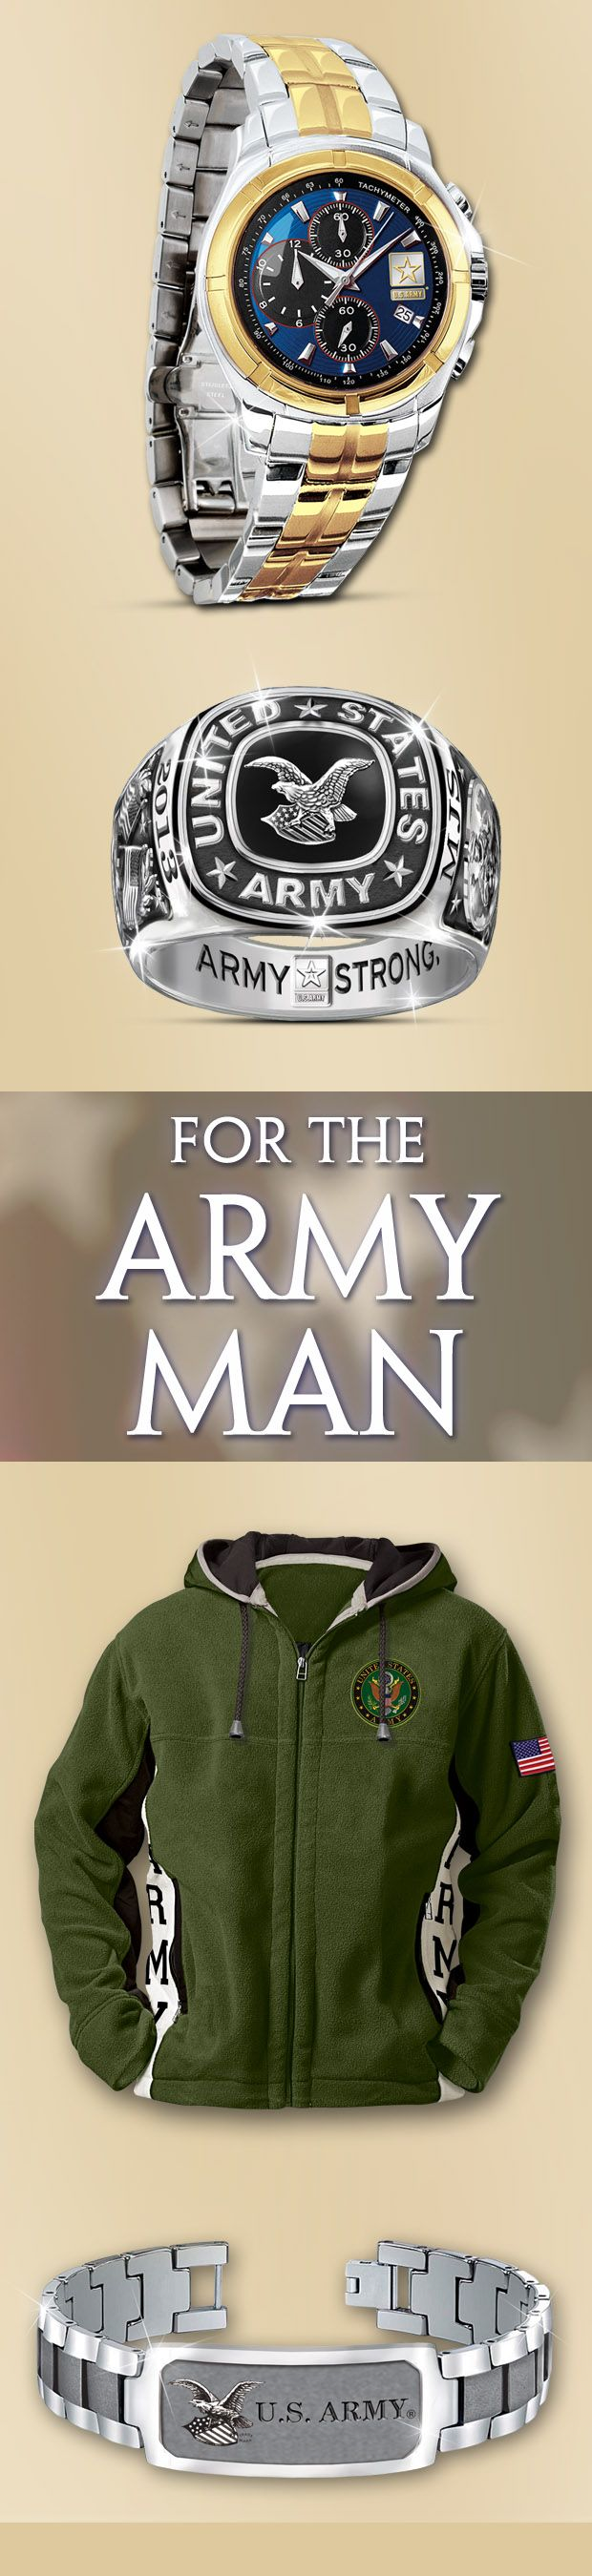 Honor your brave soldier with an Army gift of jewelry or apparel. Army Strong never looked so handsome.